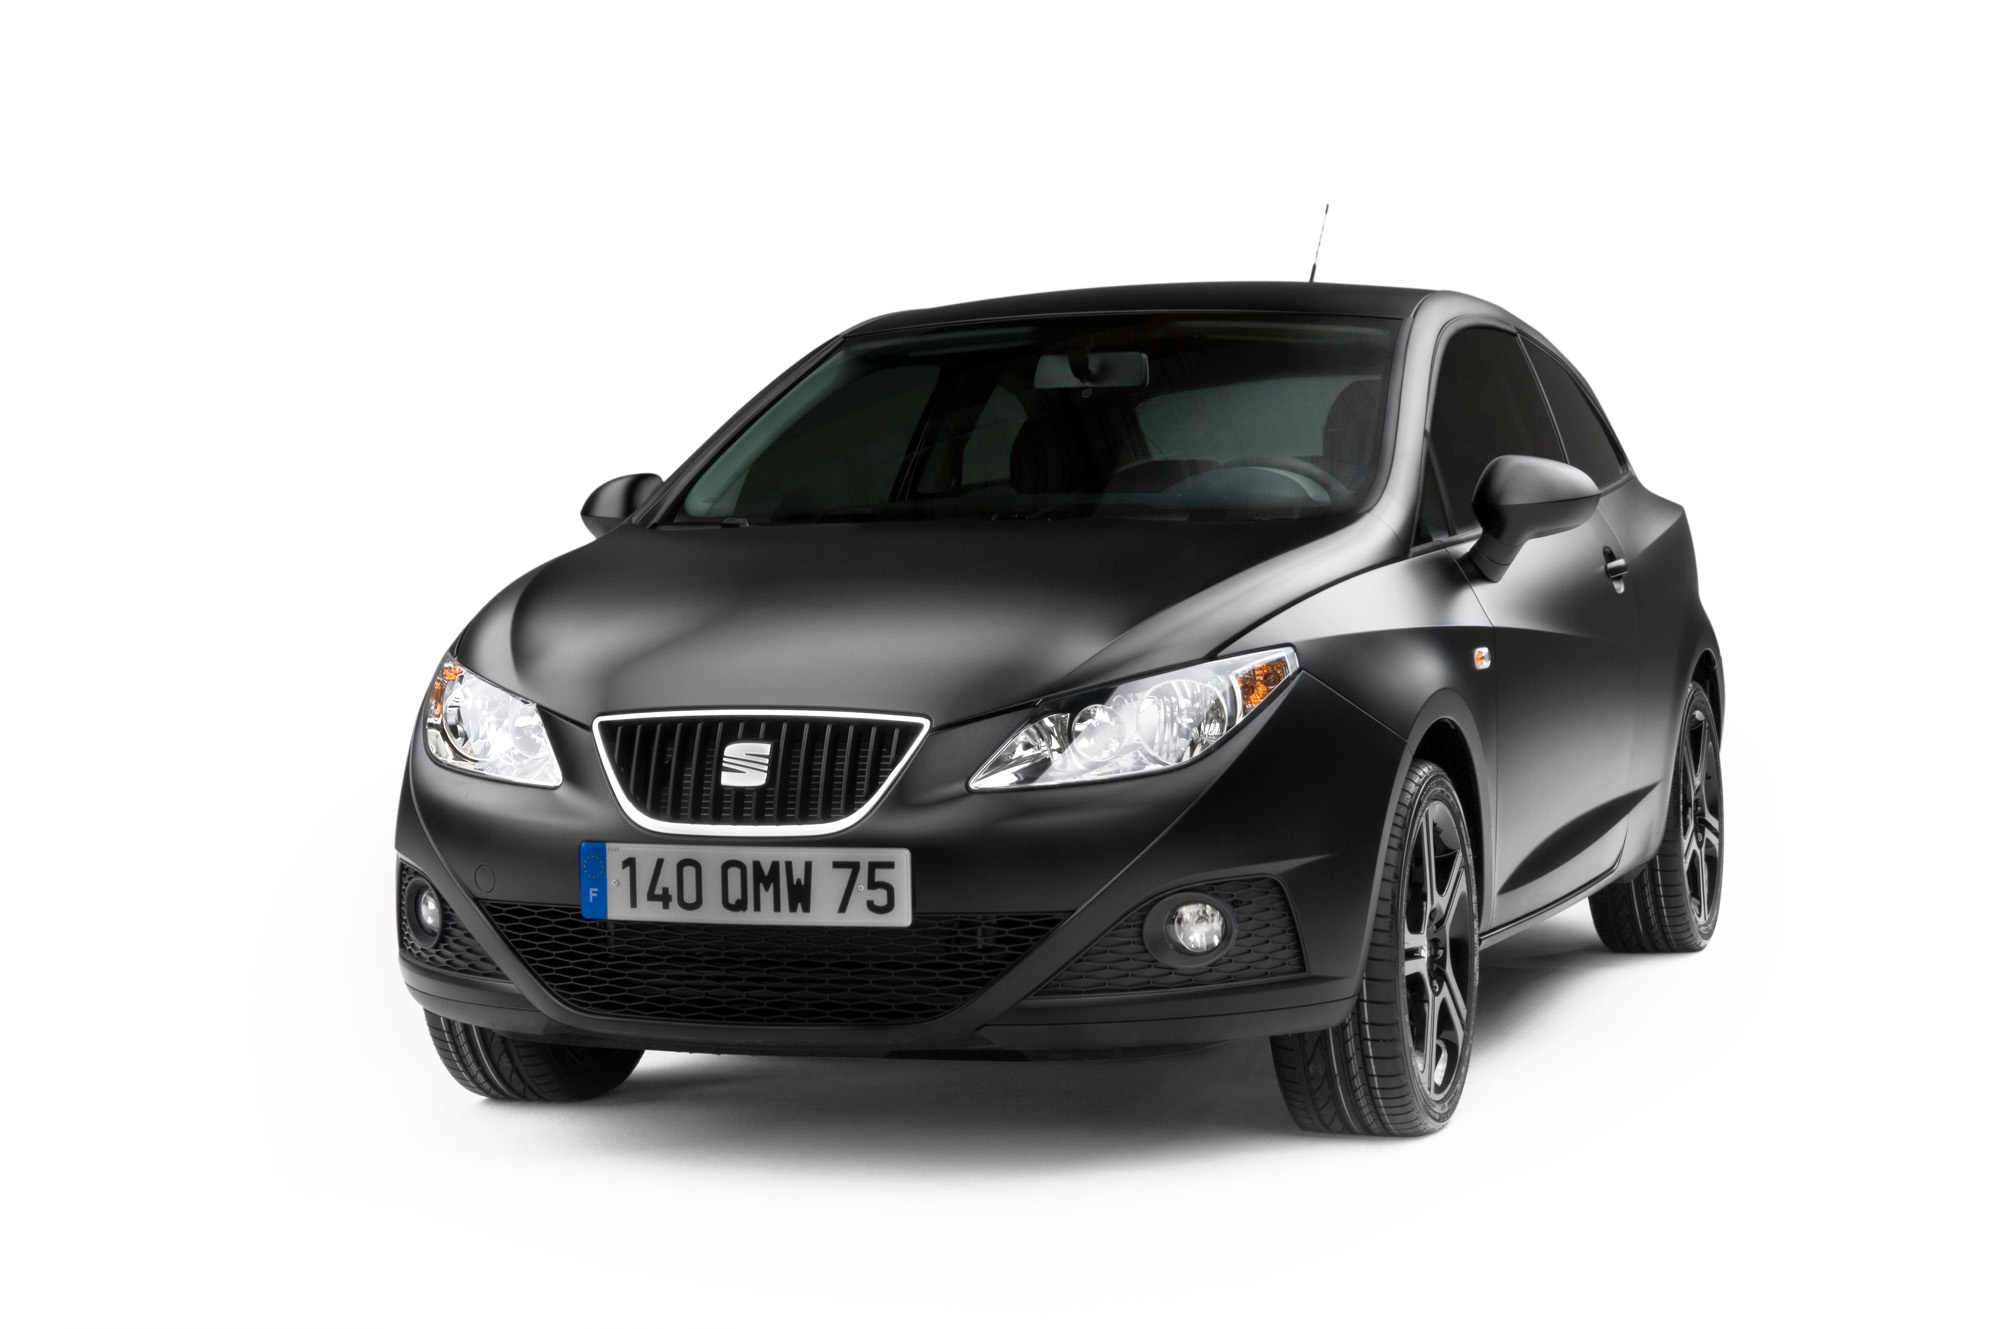 seat ibiza sc technical details history photos on better parts ltd. Black Bedroom Furniture Sets. Home Design Ideas